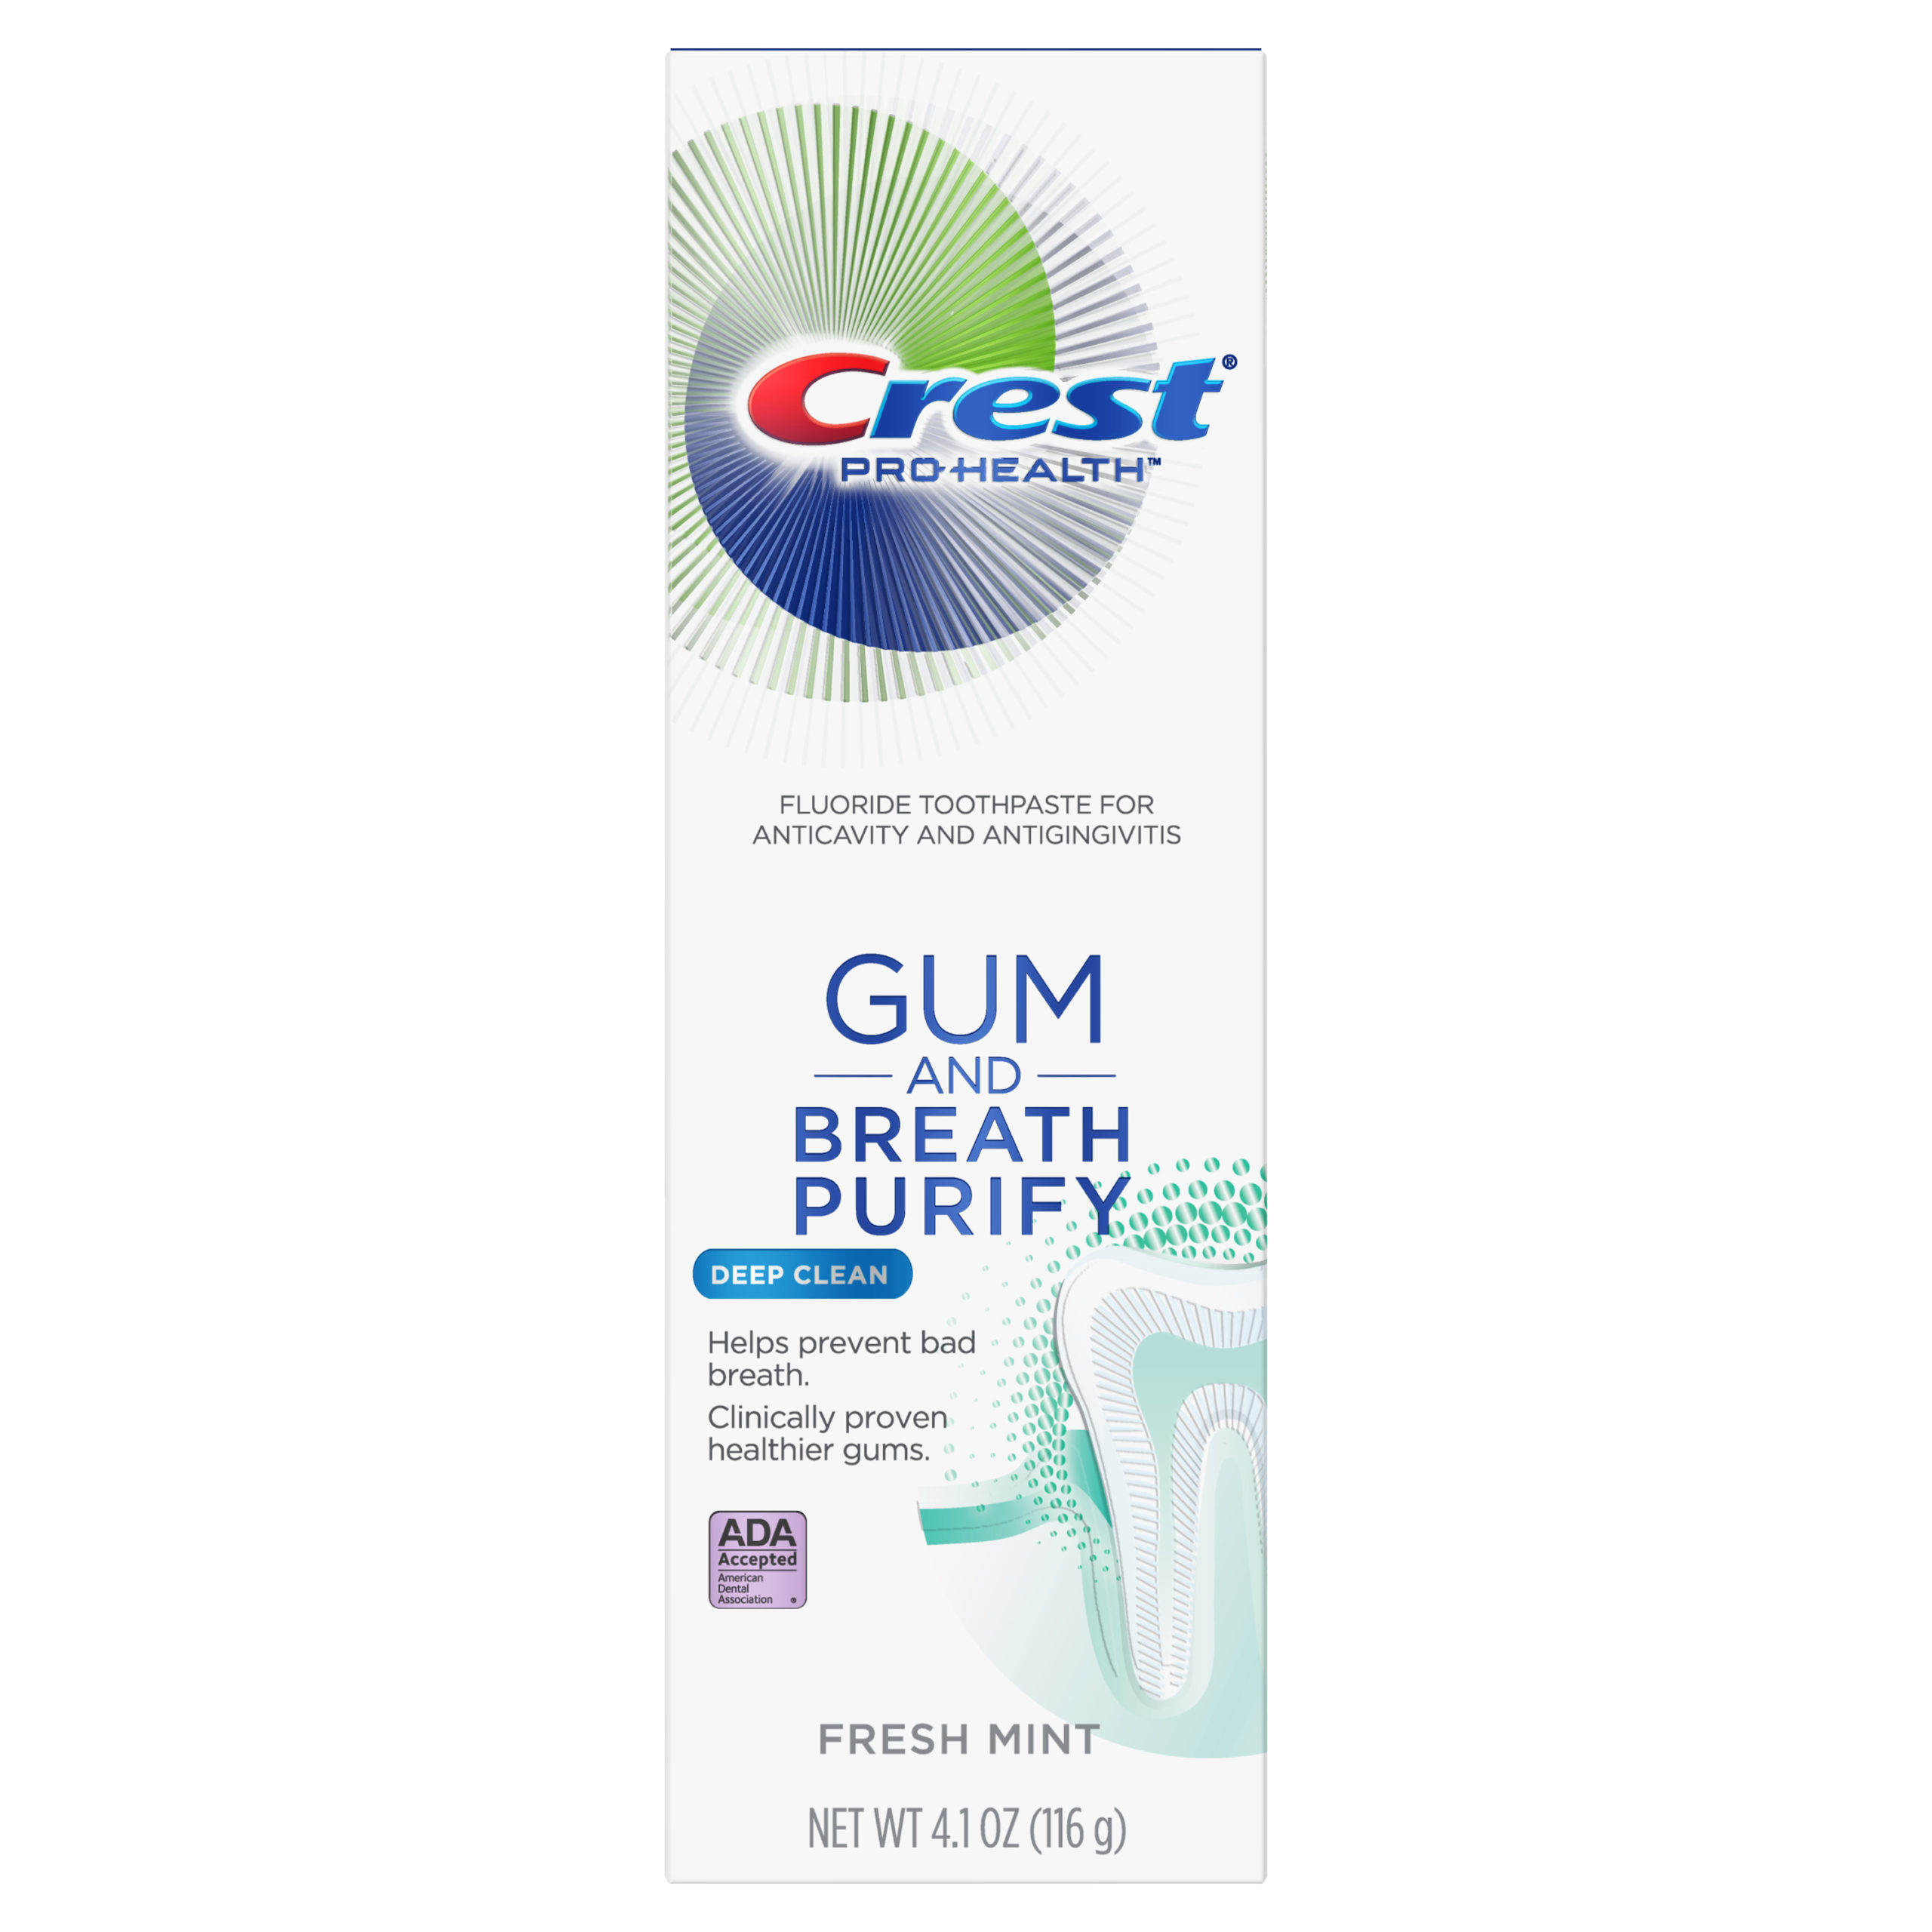 Crest Gum and Breath Purify, Deep Clean